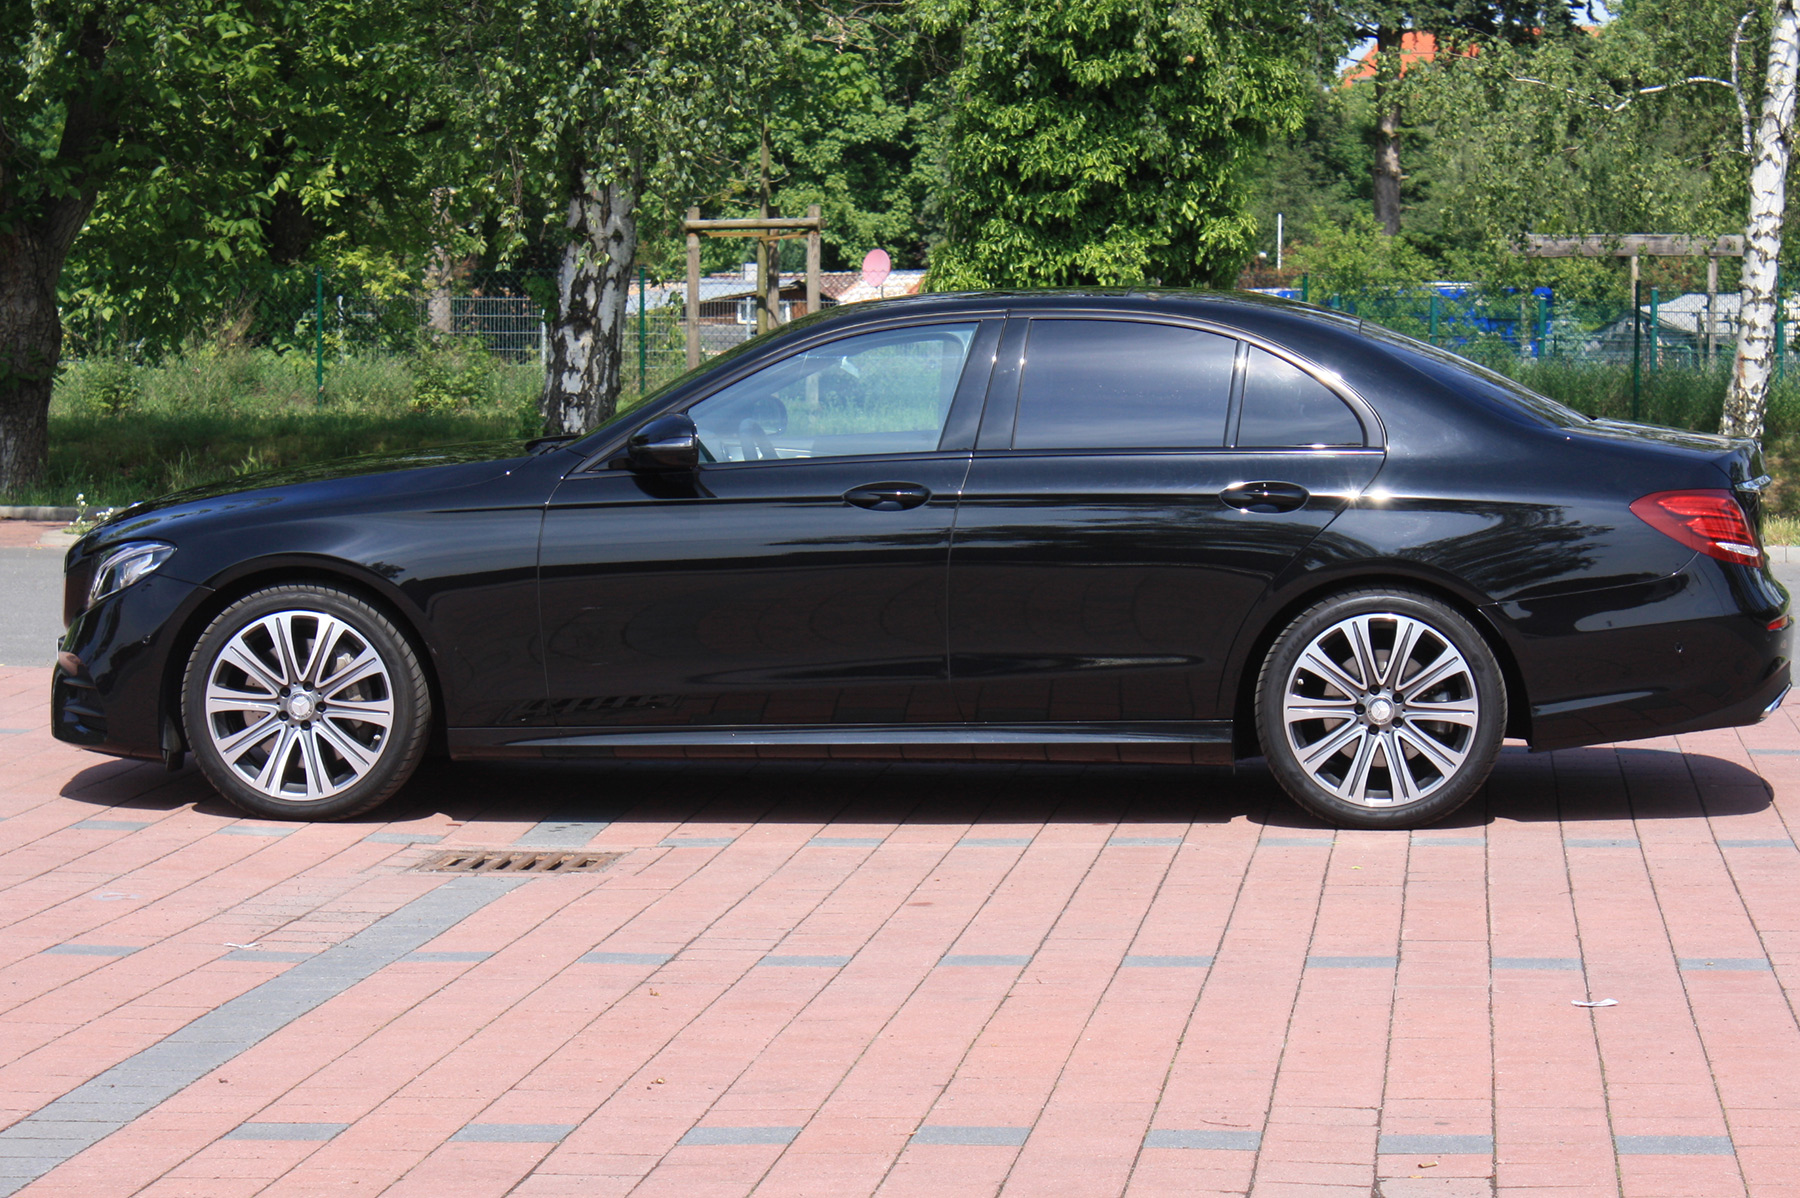 berlin limo, berlin limo hire the world awaits outside, the stress Limo 12 Personen.htm #11